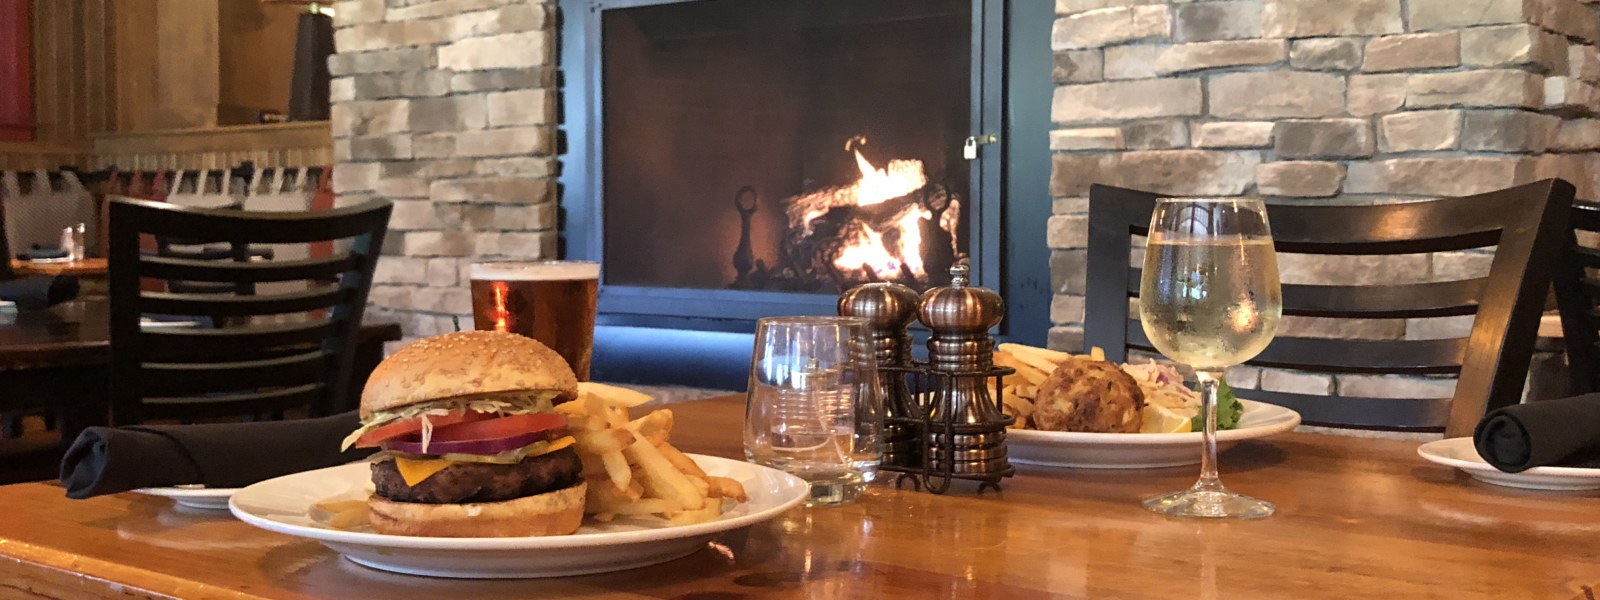 burger by fireplace in grille